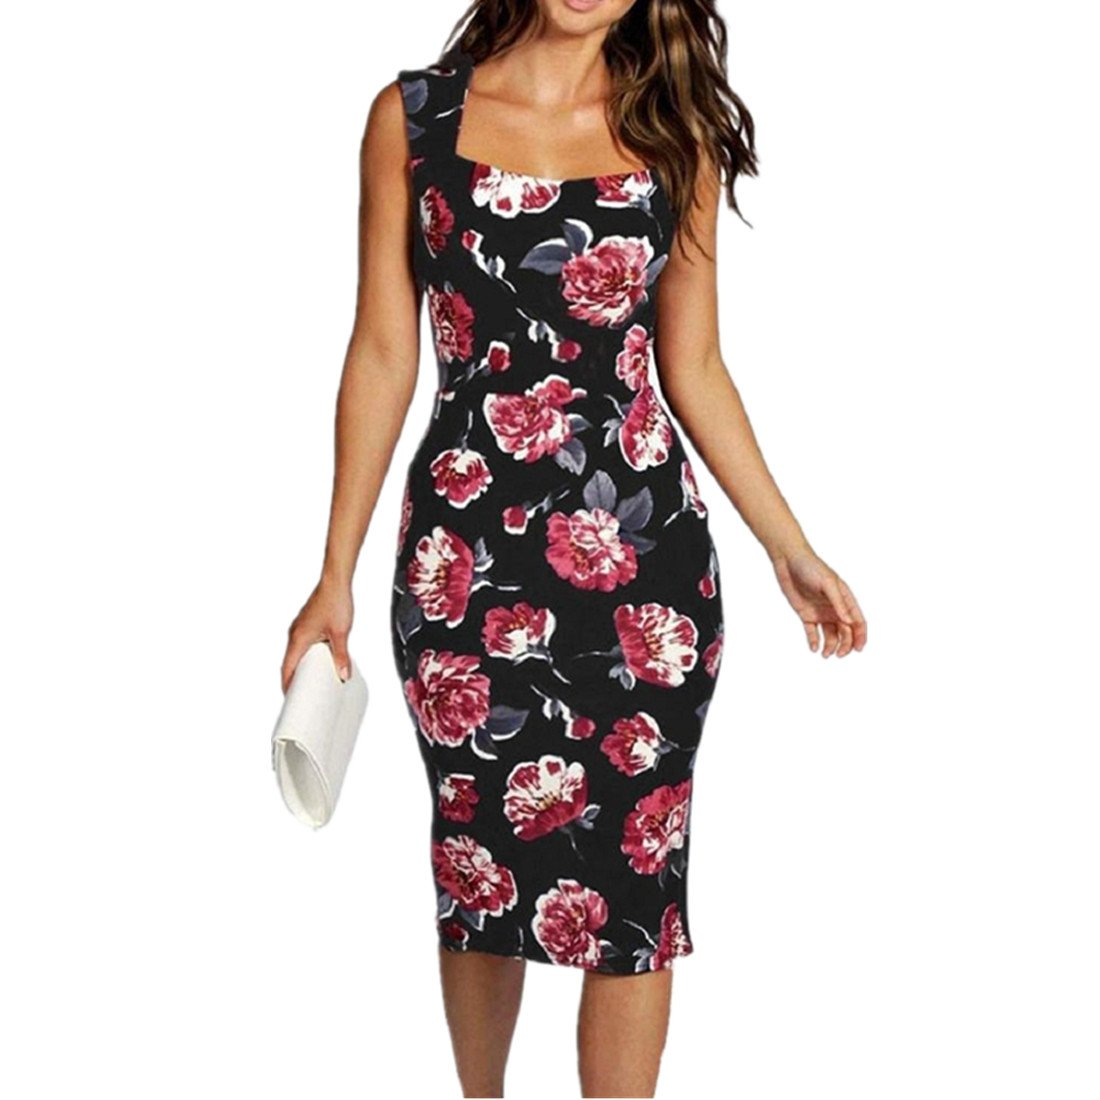 GONKOMA Women Summer Floral Slim Dress Bodycon Lady Floral Printed Party Dress XWJ520